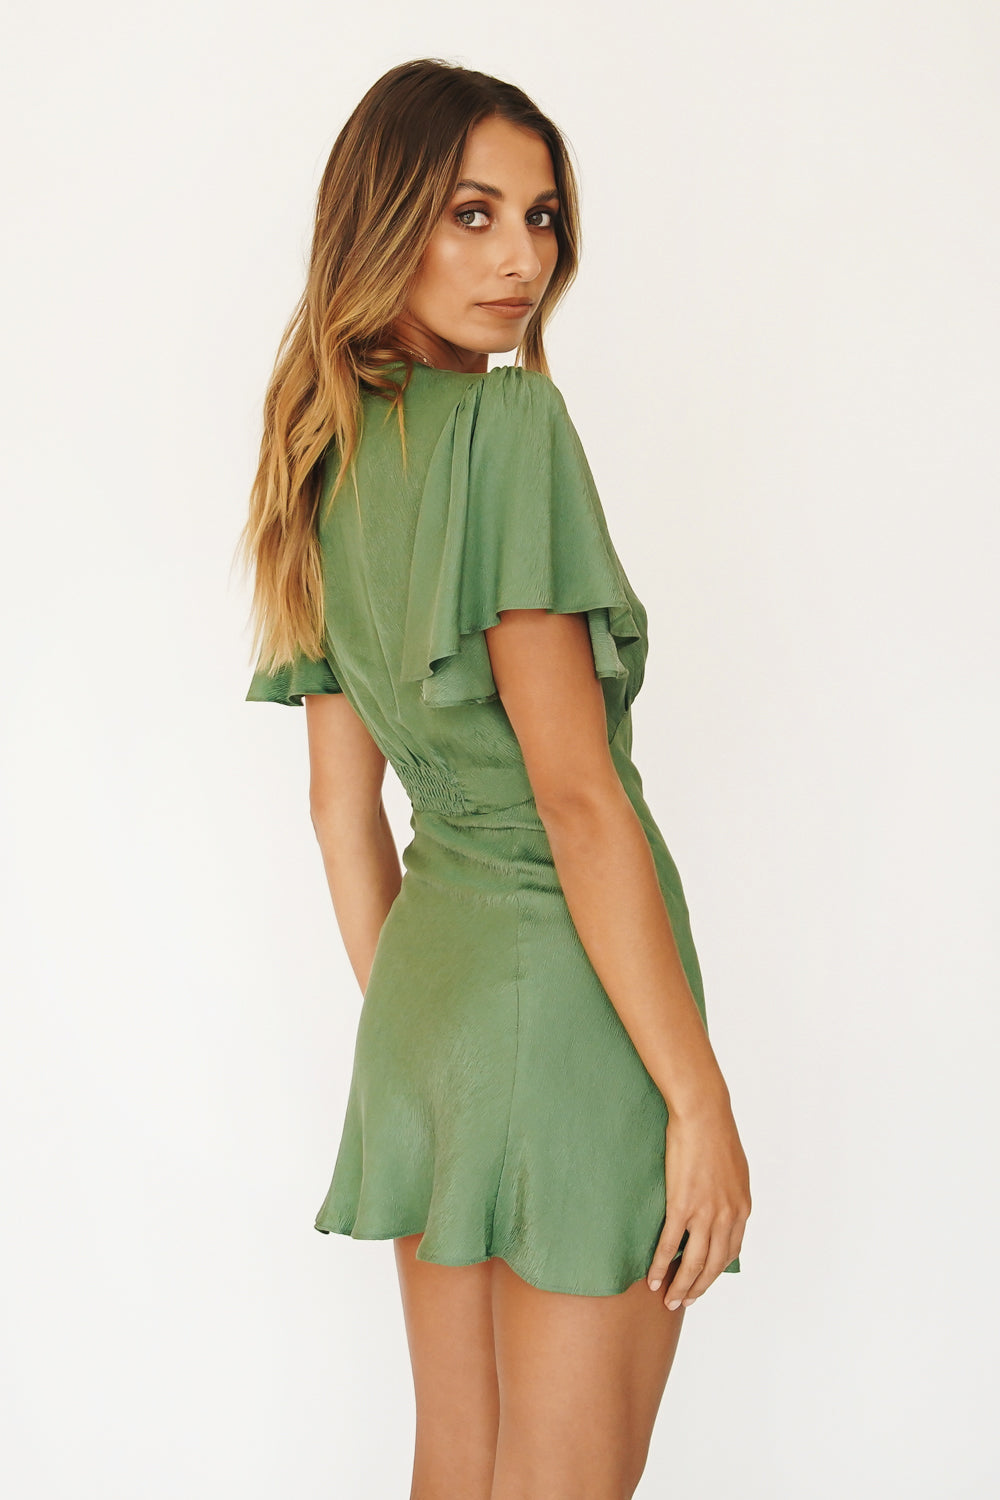 VRG GRL All The Way Bias Cut Mini Dress // Green